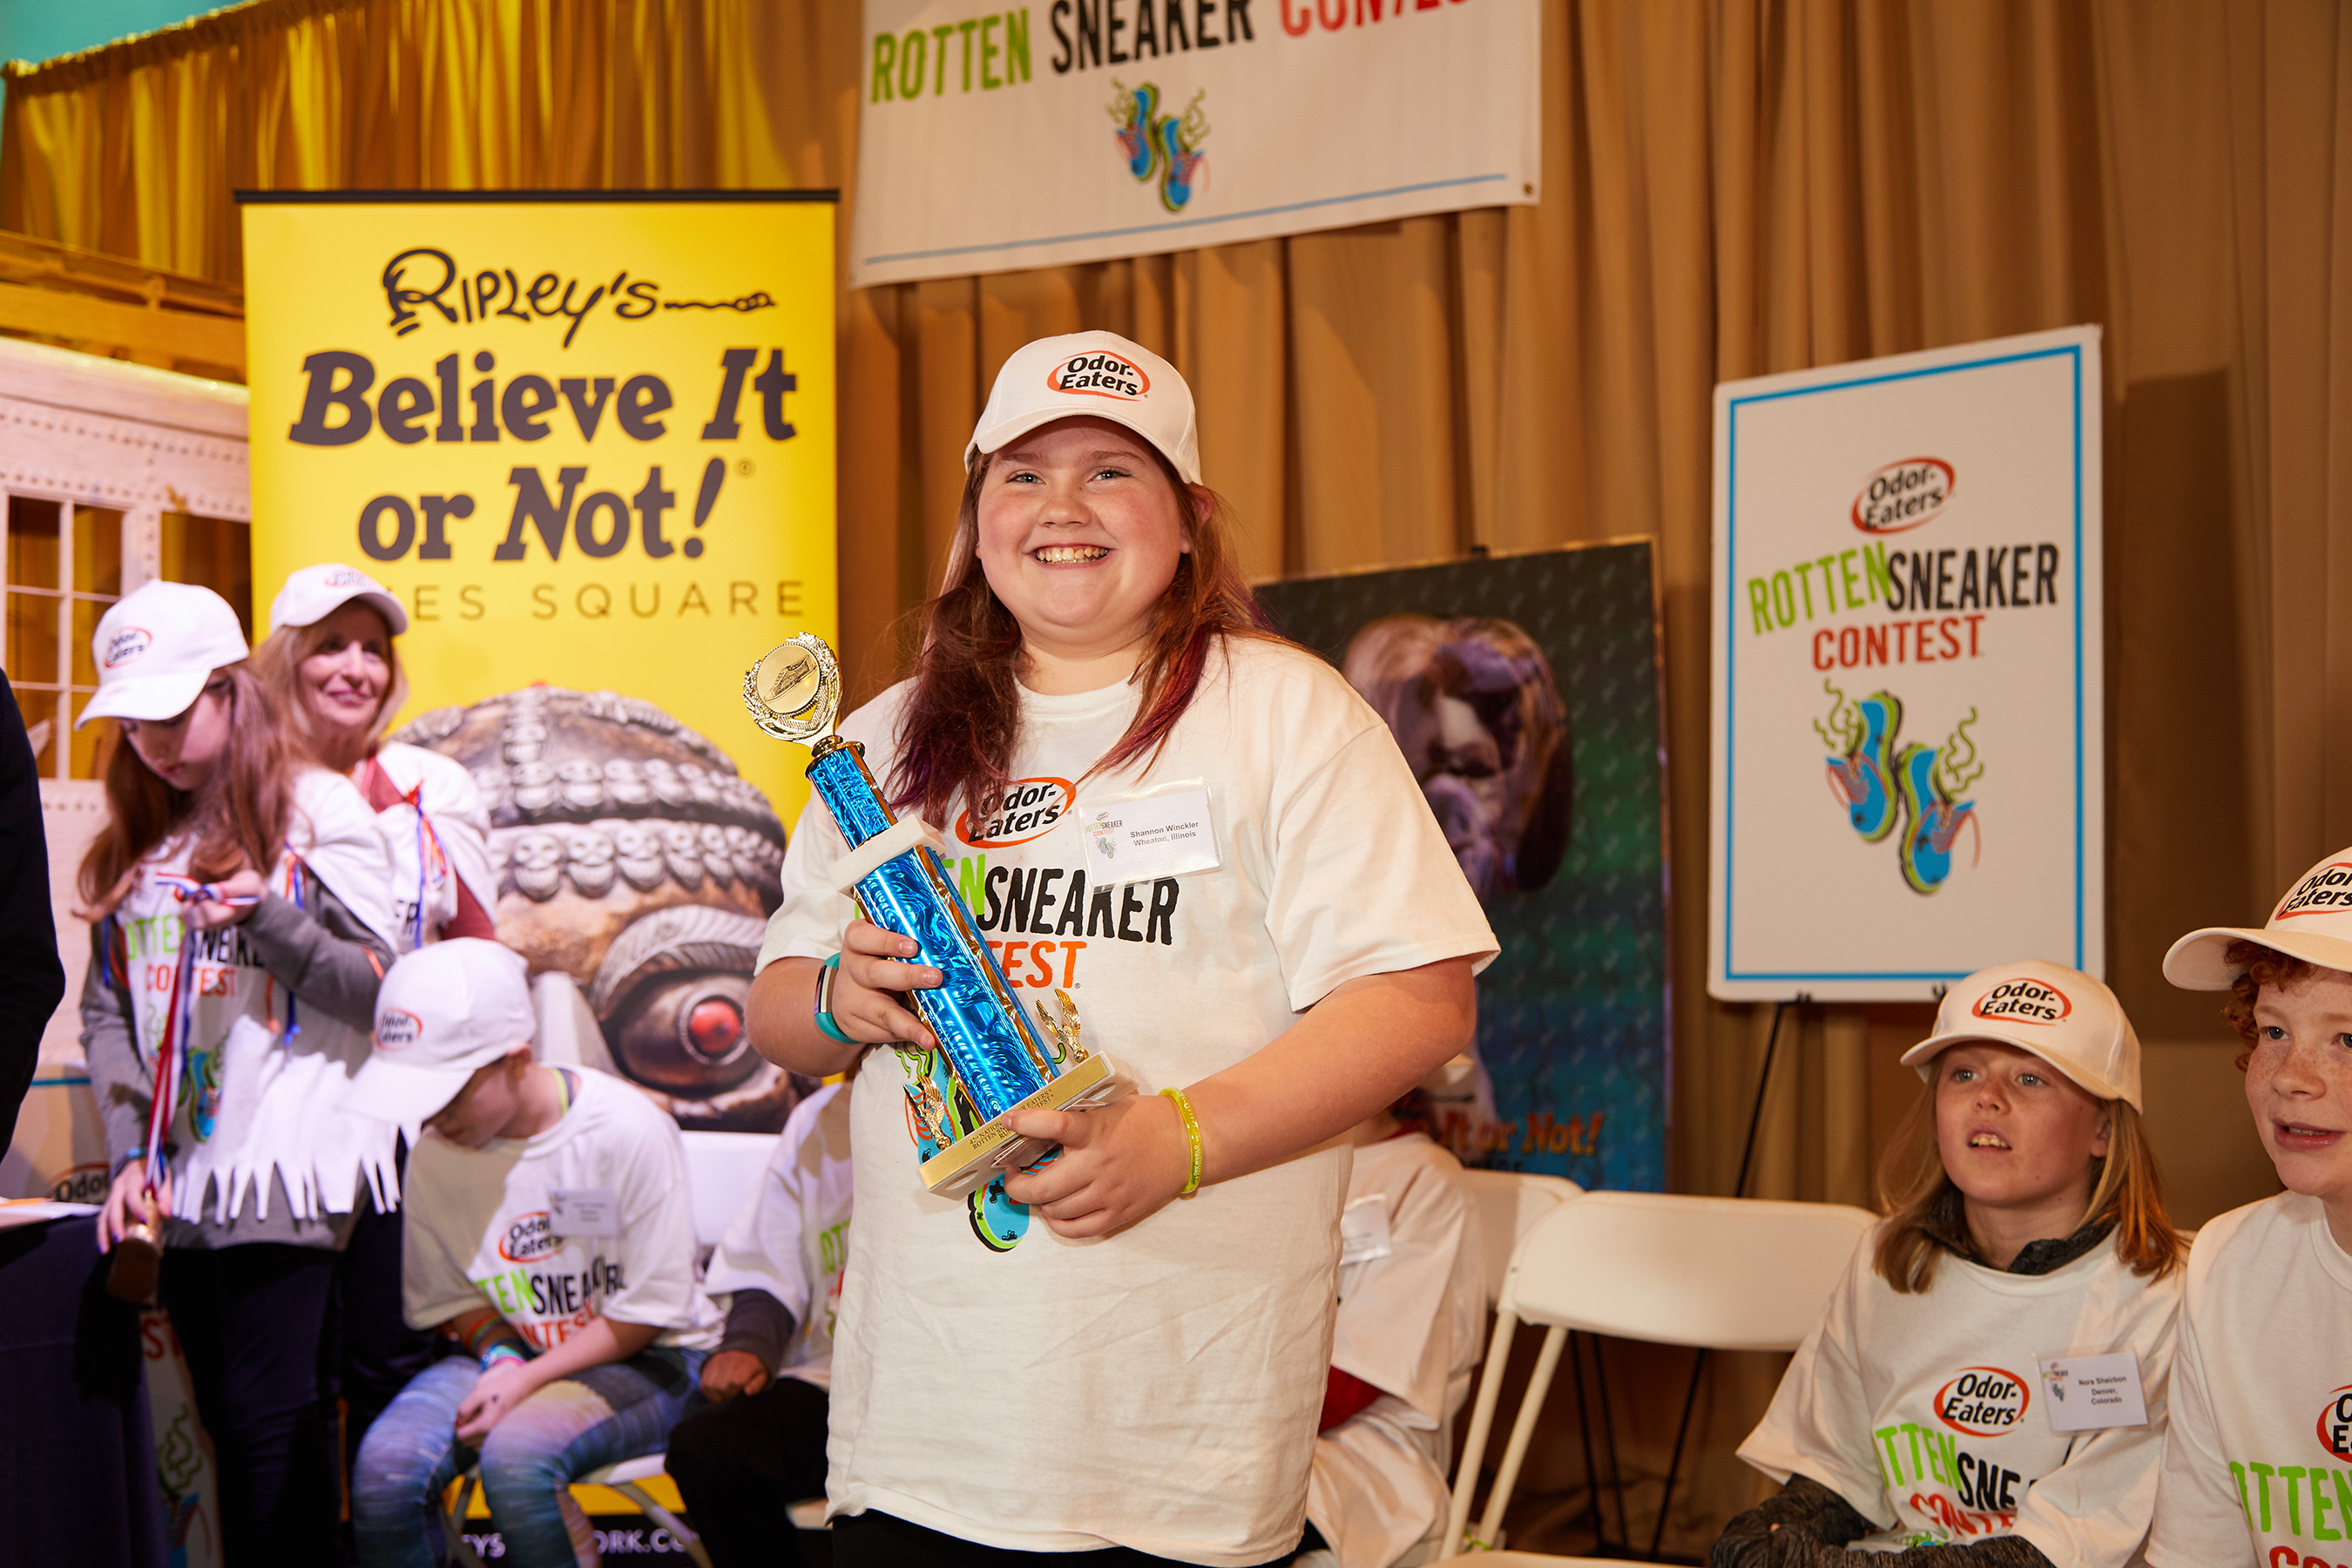 Connor Slocombe From Eagle River, AK Wins The 2017 National Odor-Eaters® Rotten Sneaker Contest®